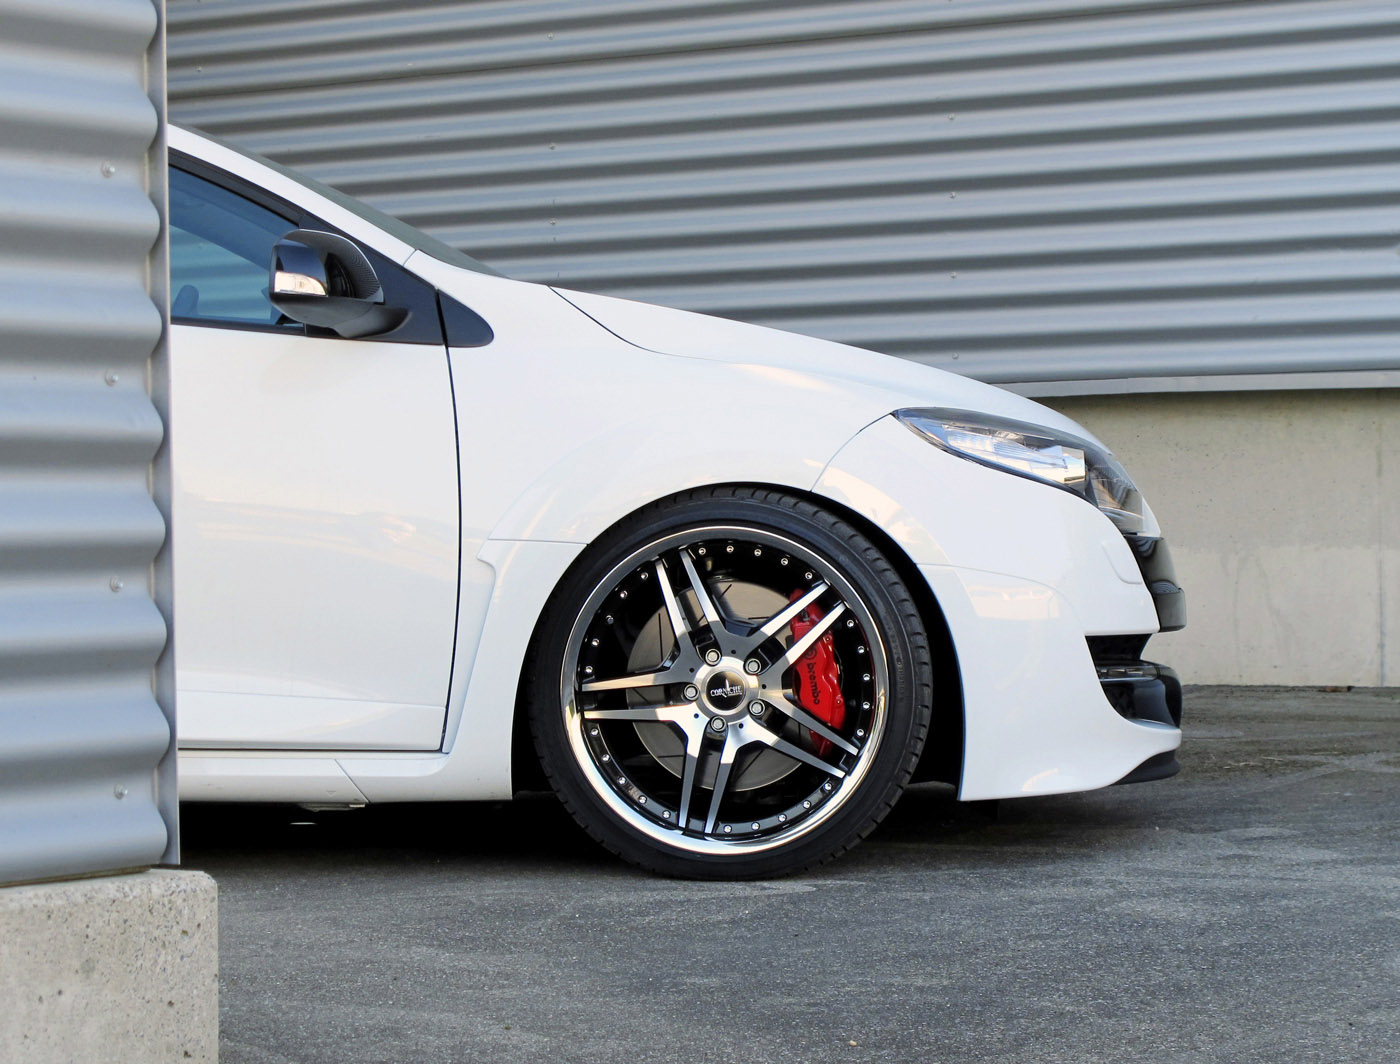 Renault Megane RS with CORNICHE VEGAS Wheels - Picture 40249